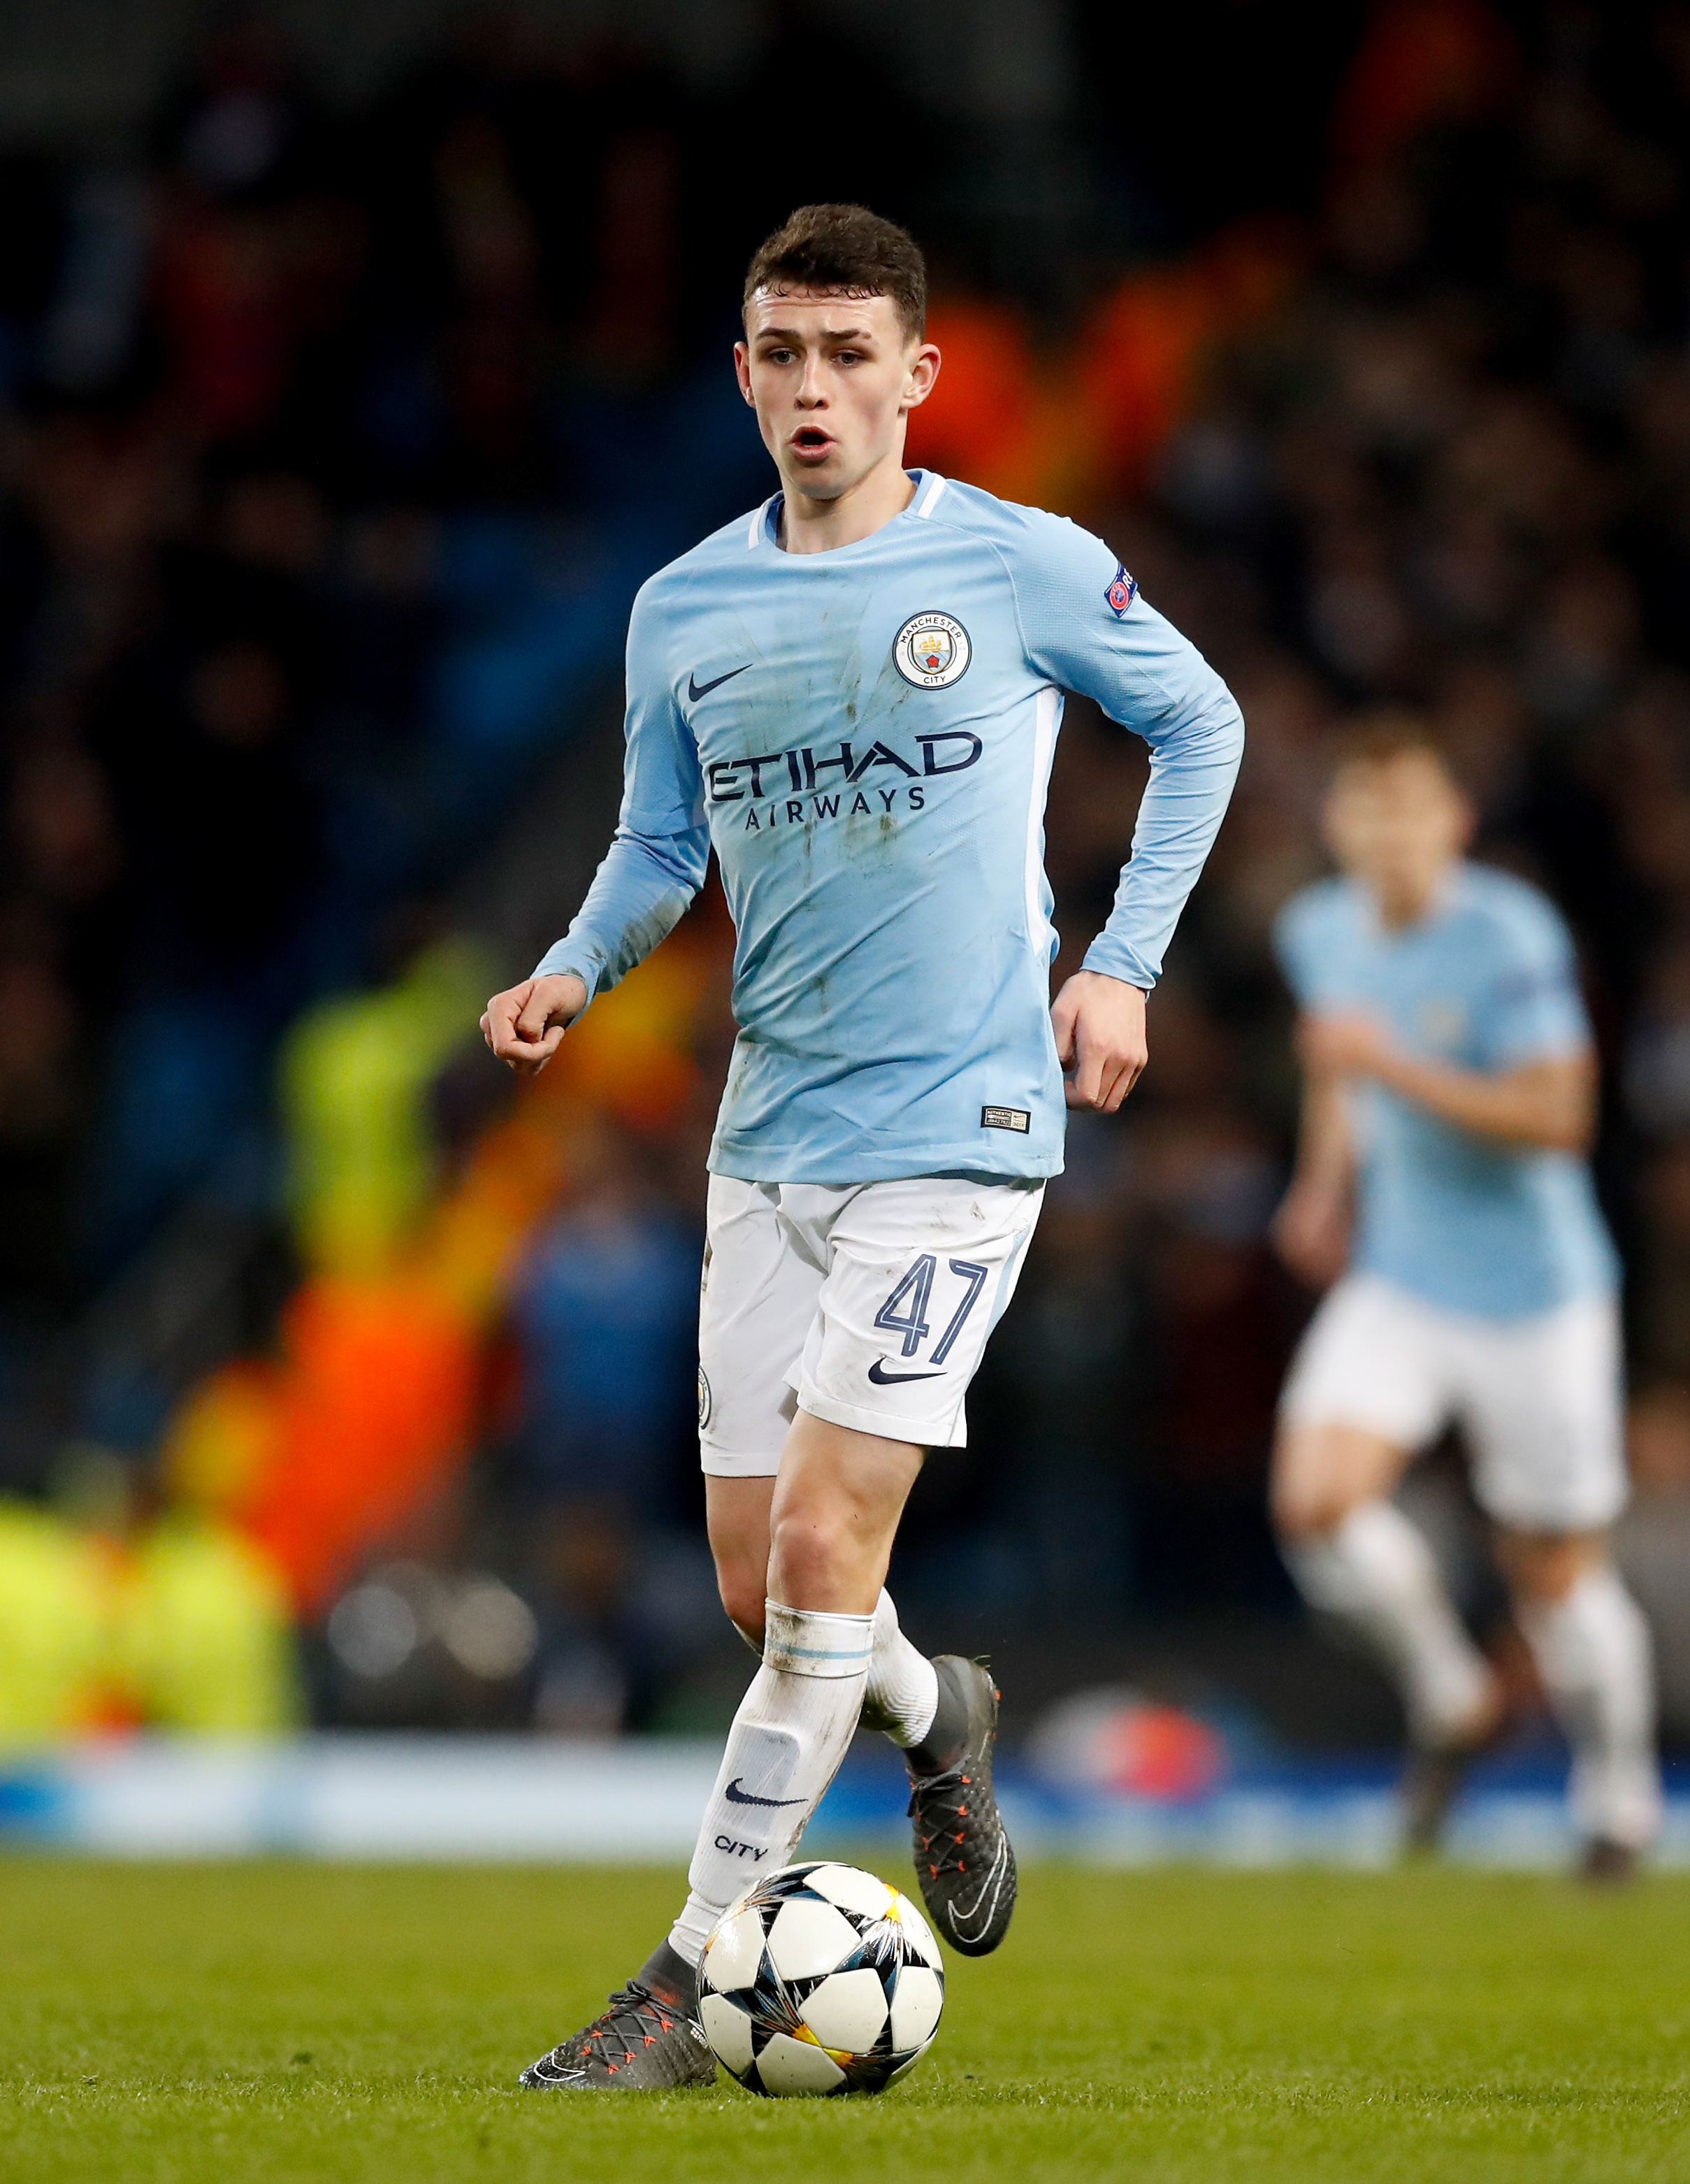 Phil Foden impressed again for Manchester City on Sunday